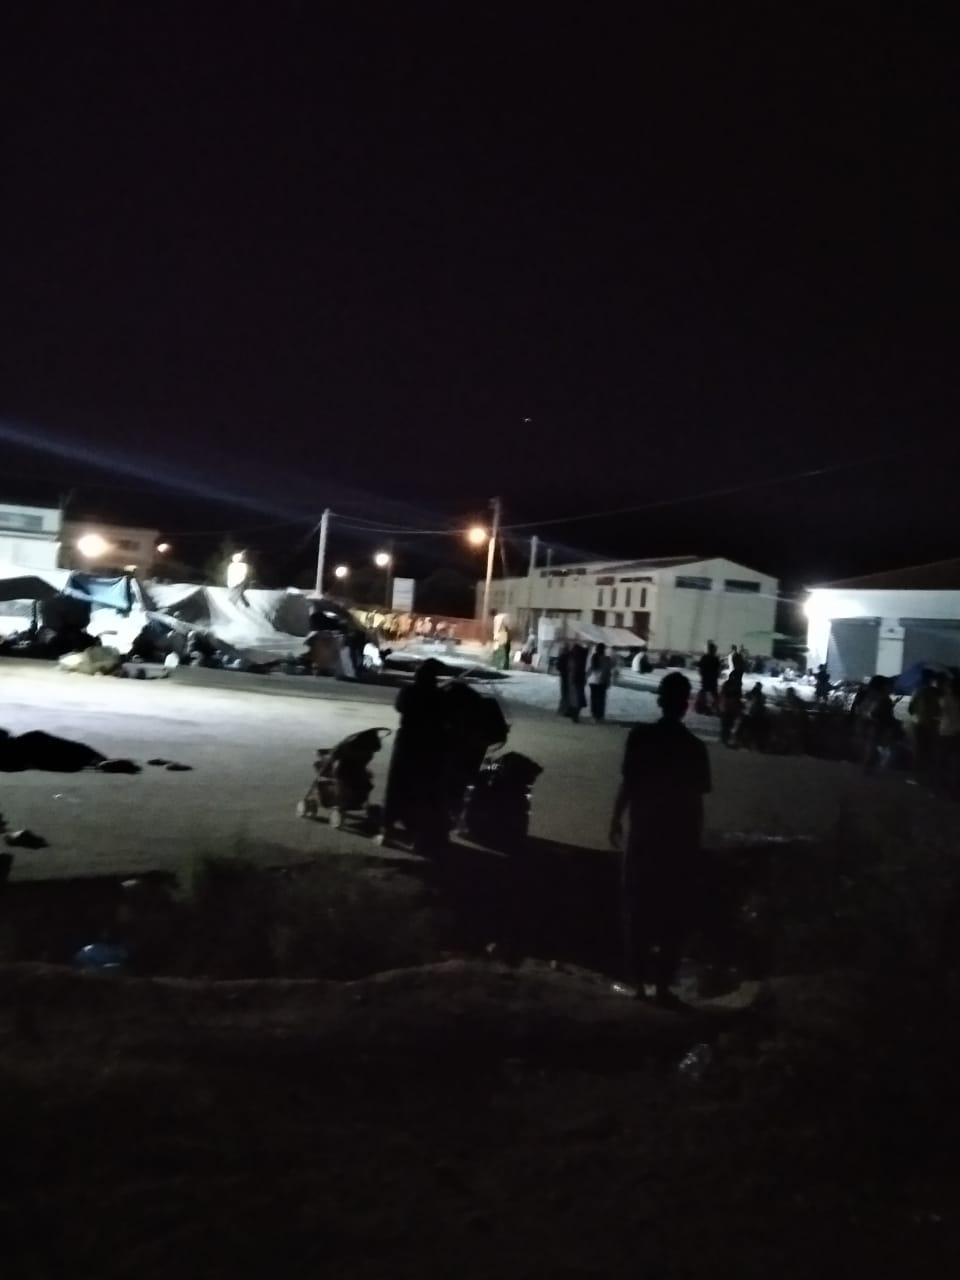 A refugee camp at night